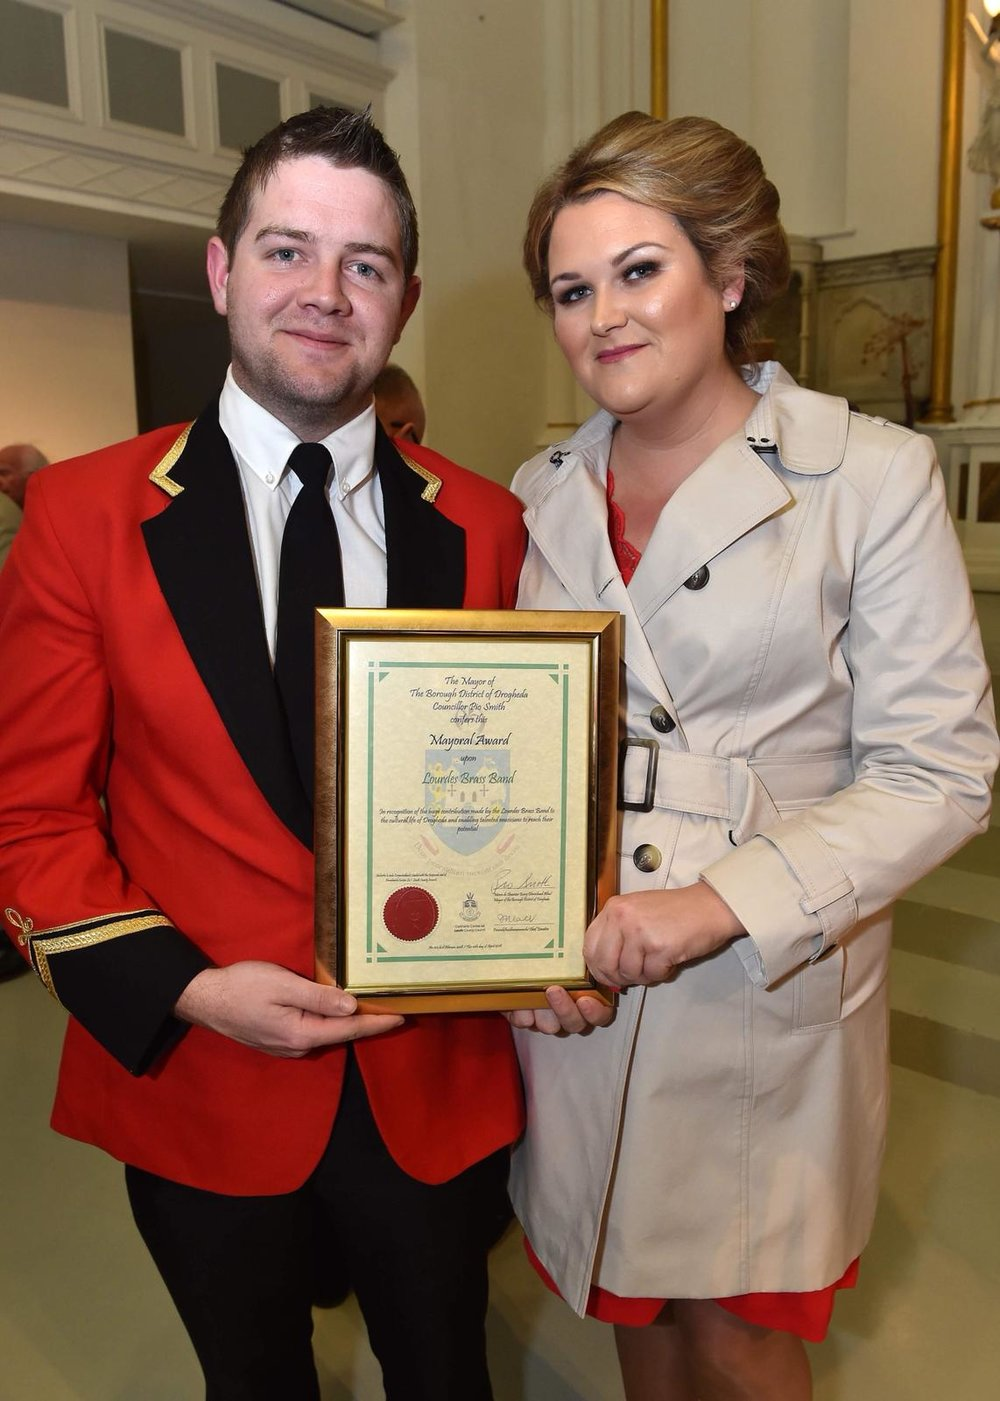 Drogheda Mayoral award - Apr 2018 Councilor Joanna Floody & Wayne Floody.jpg